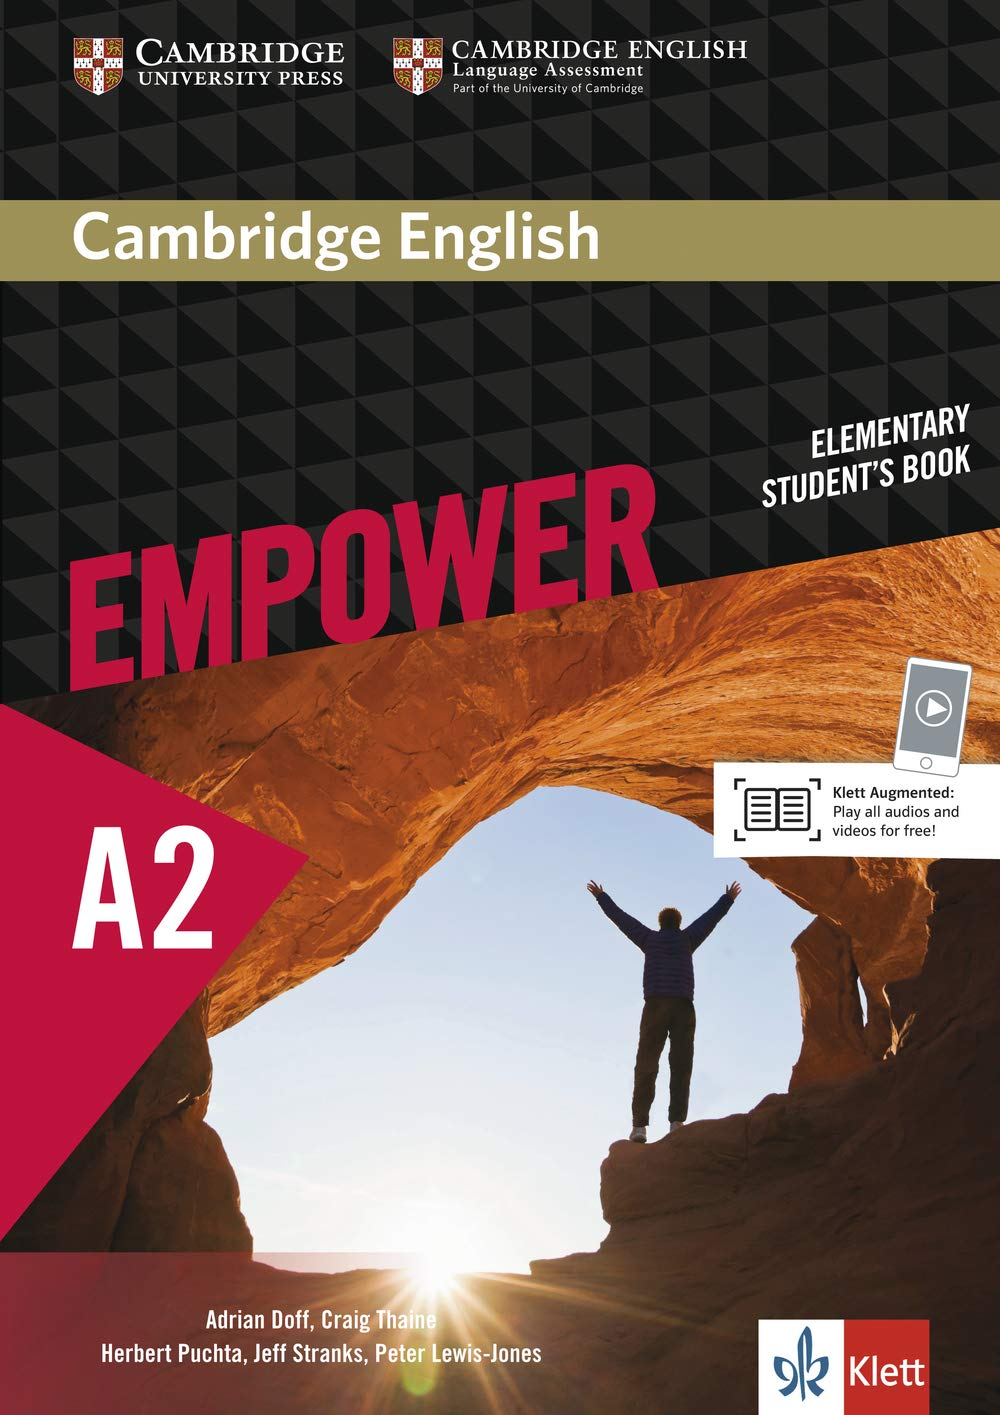 Cambridge English Empower. Students Book (A2): Amazon.es: Doff, Adrian: Libros en idiomas extranjeros